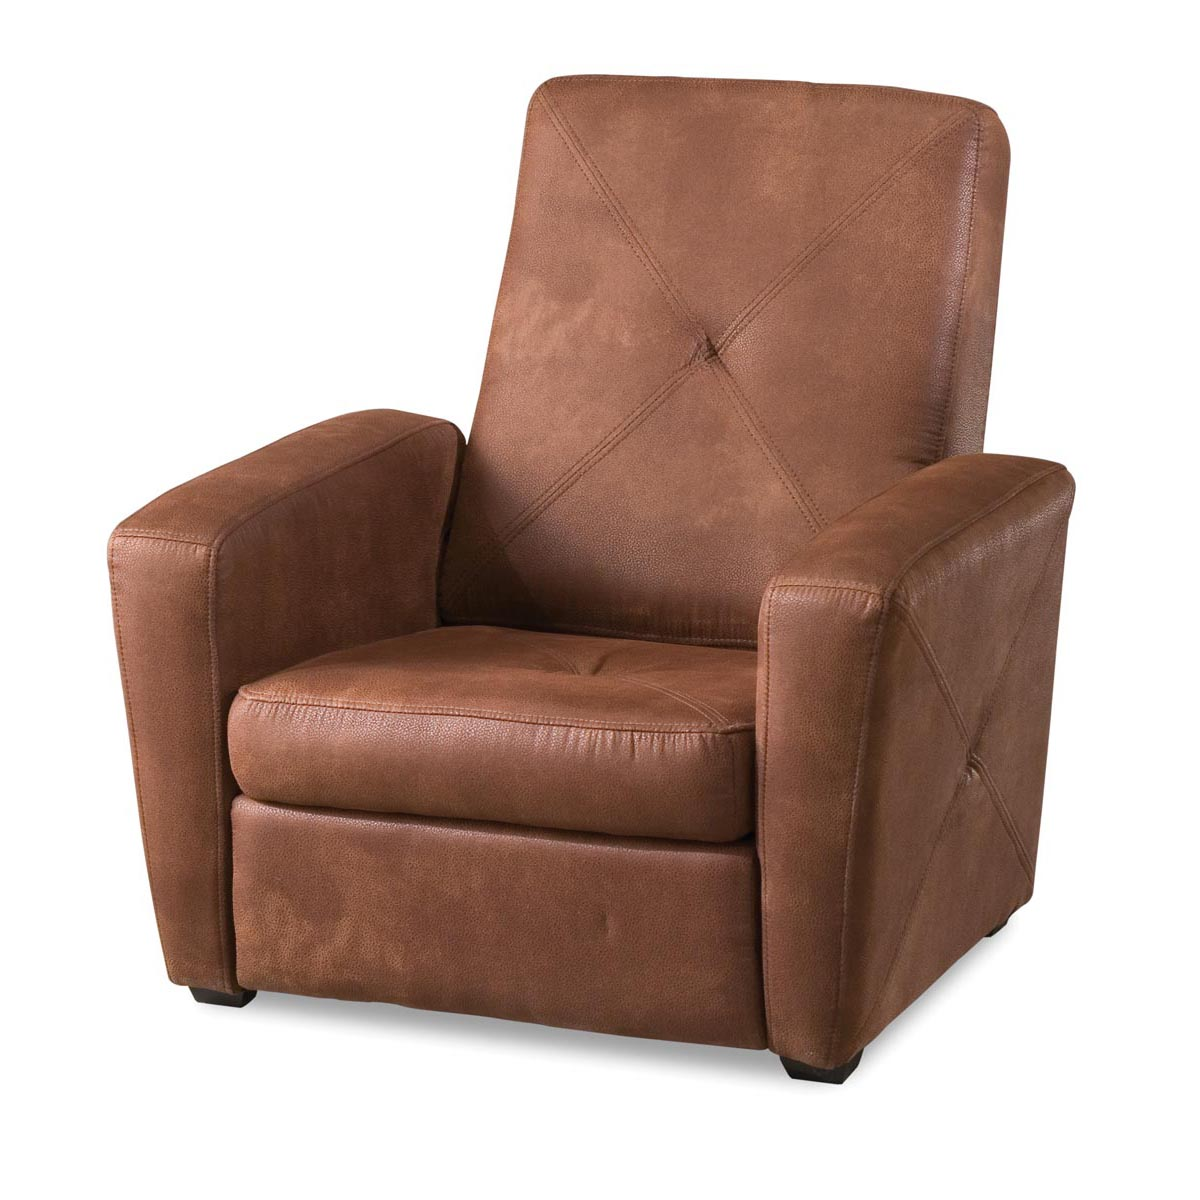 Rustic Brown Microfiber Foldable Gaming Chair Free Shipping Today 7569466